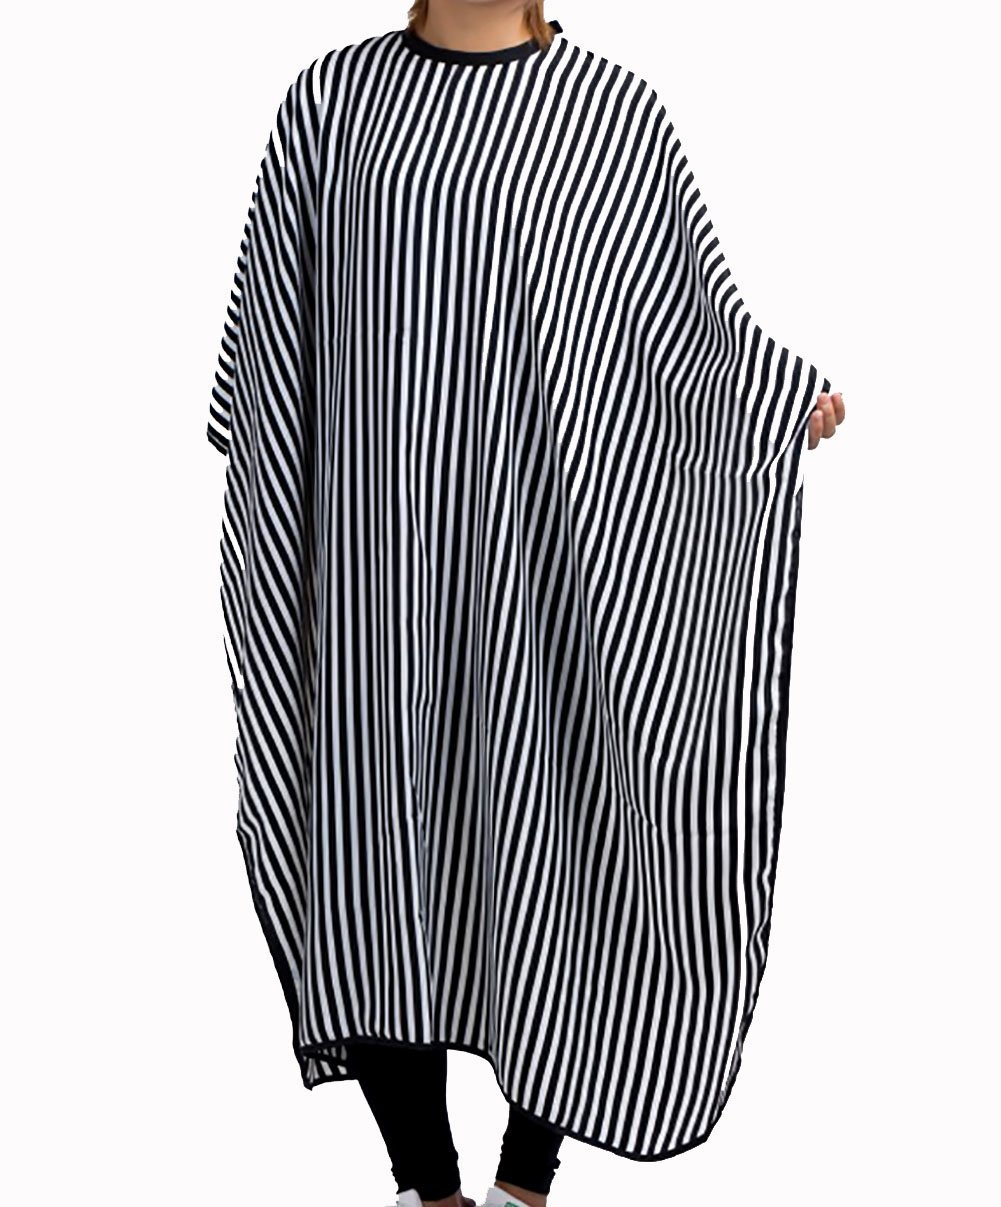 Driewbeauty Haircut Cape Hairdressing Gown Cape with Stripe Pattern Hair Salon Cape Wrap Shawl Styling Tool